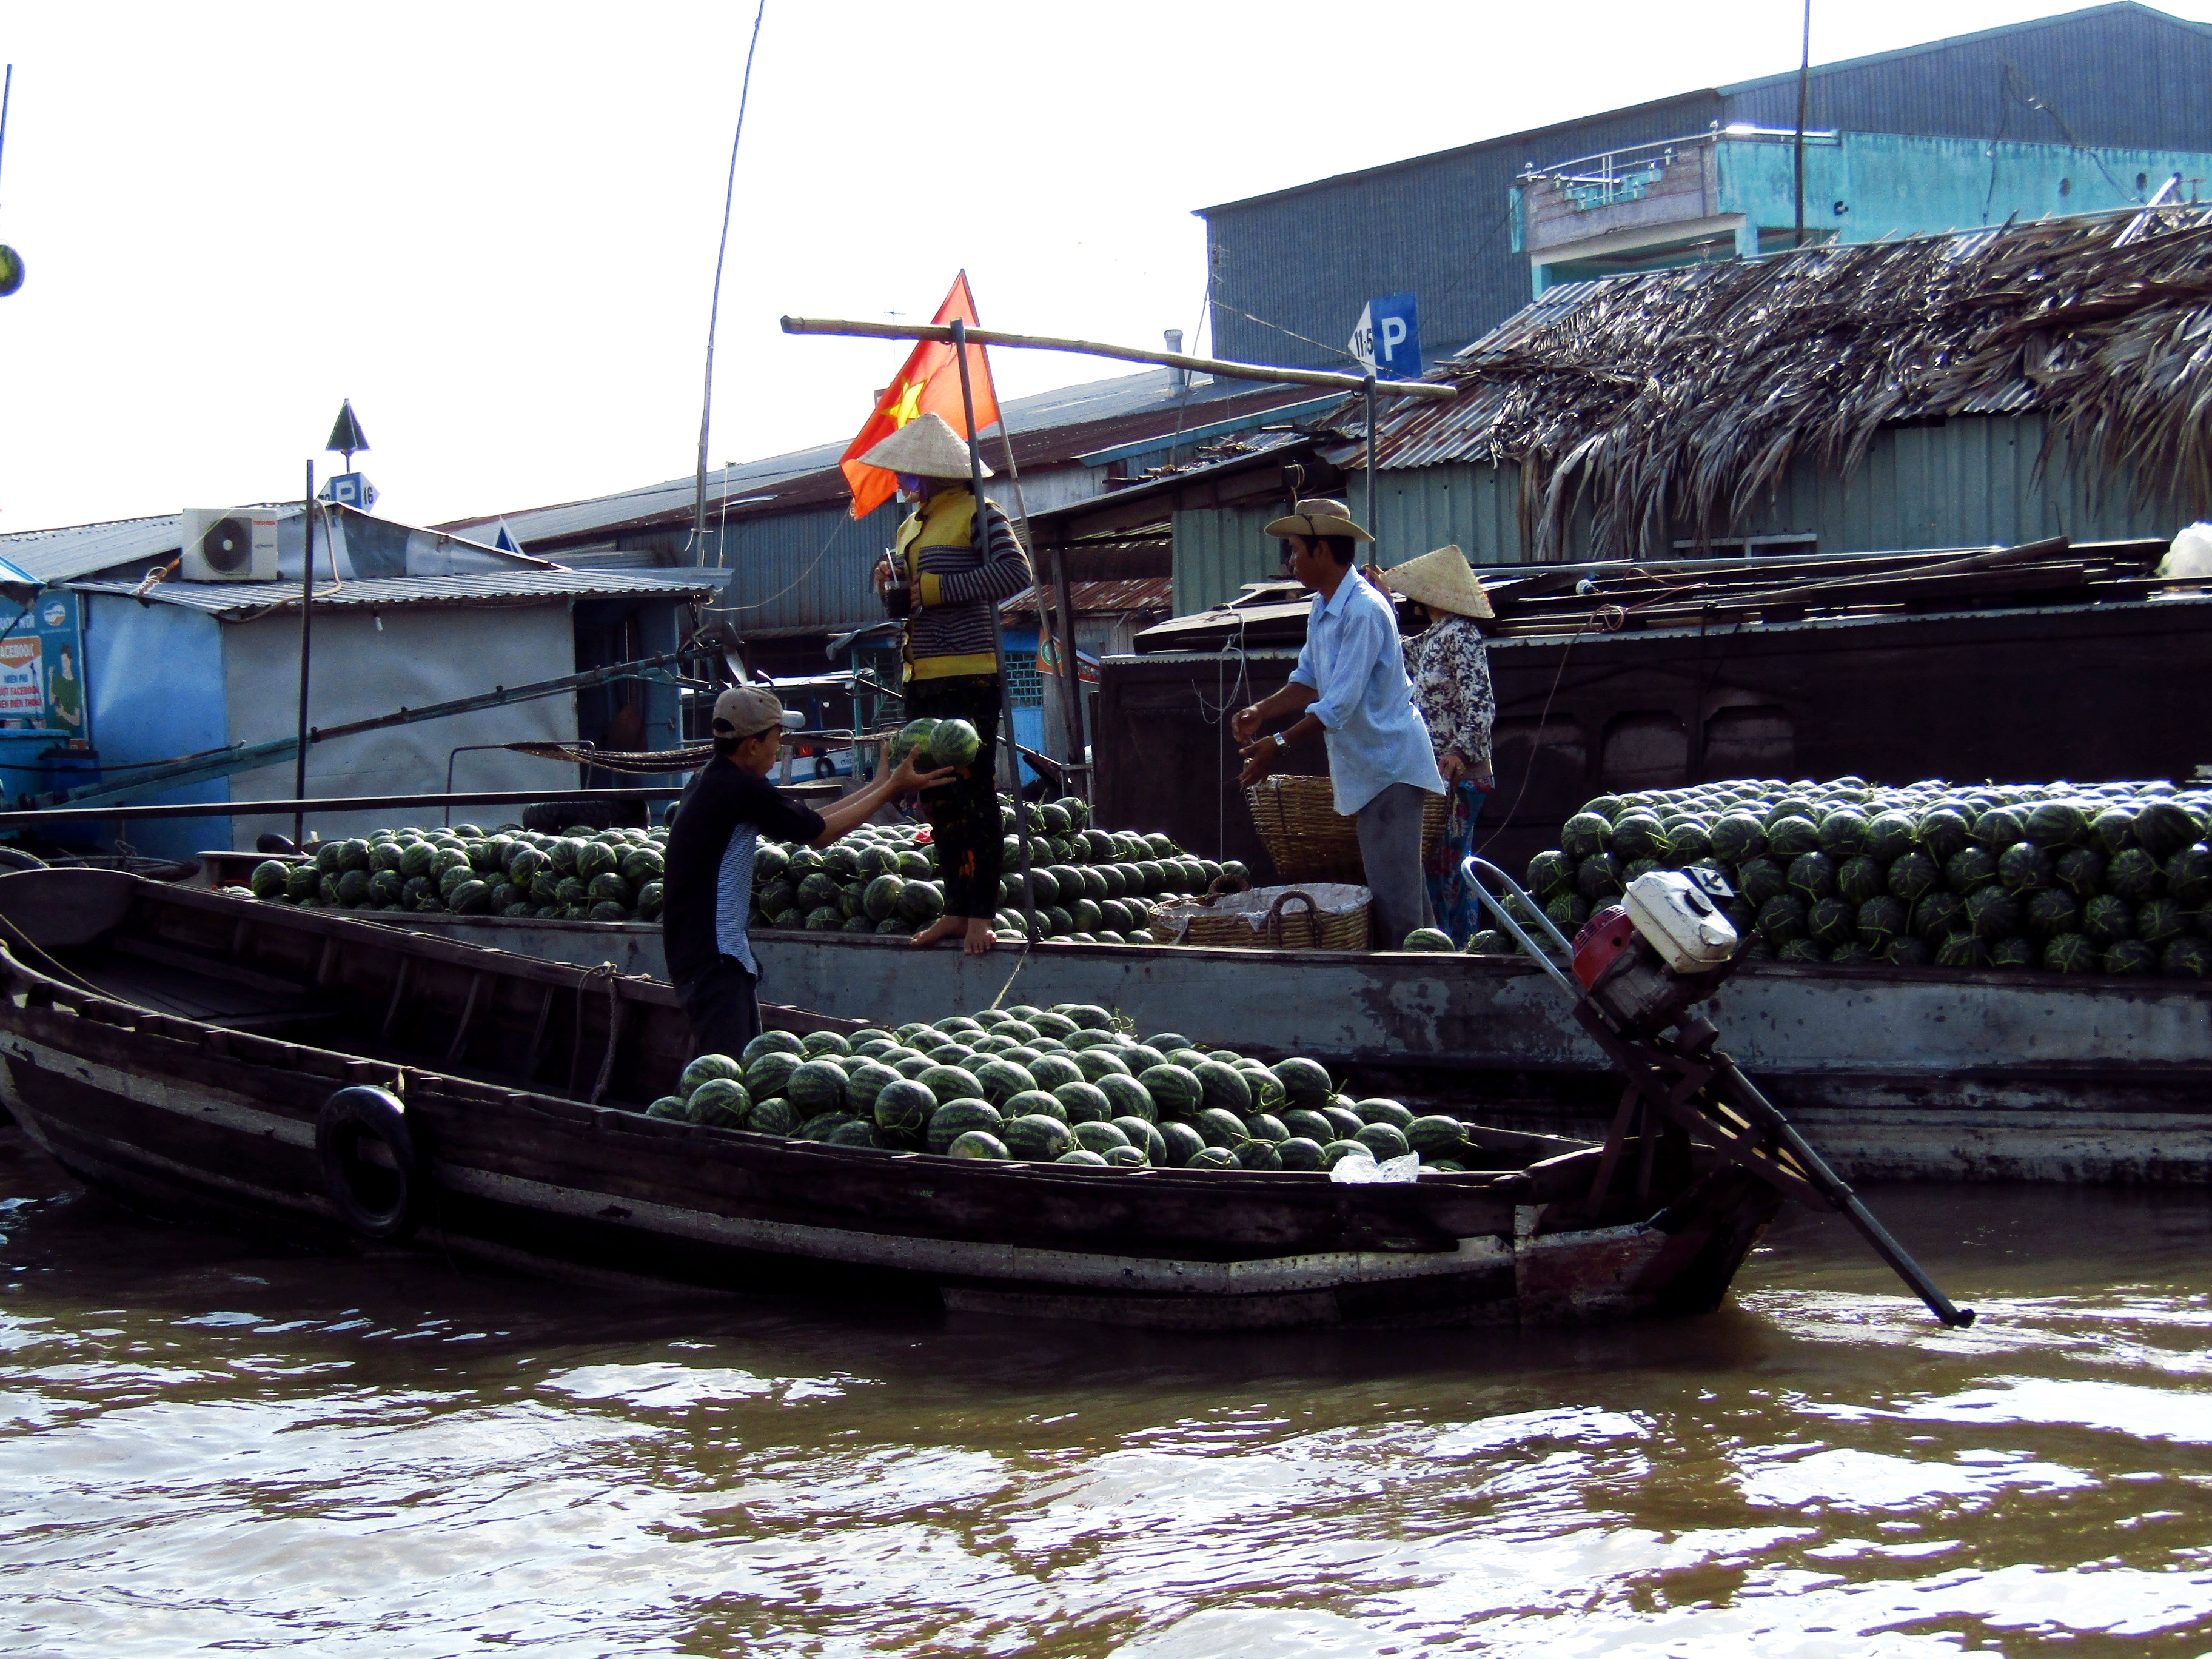 The famous floating markets on the Mekong River